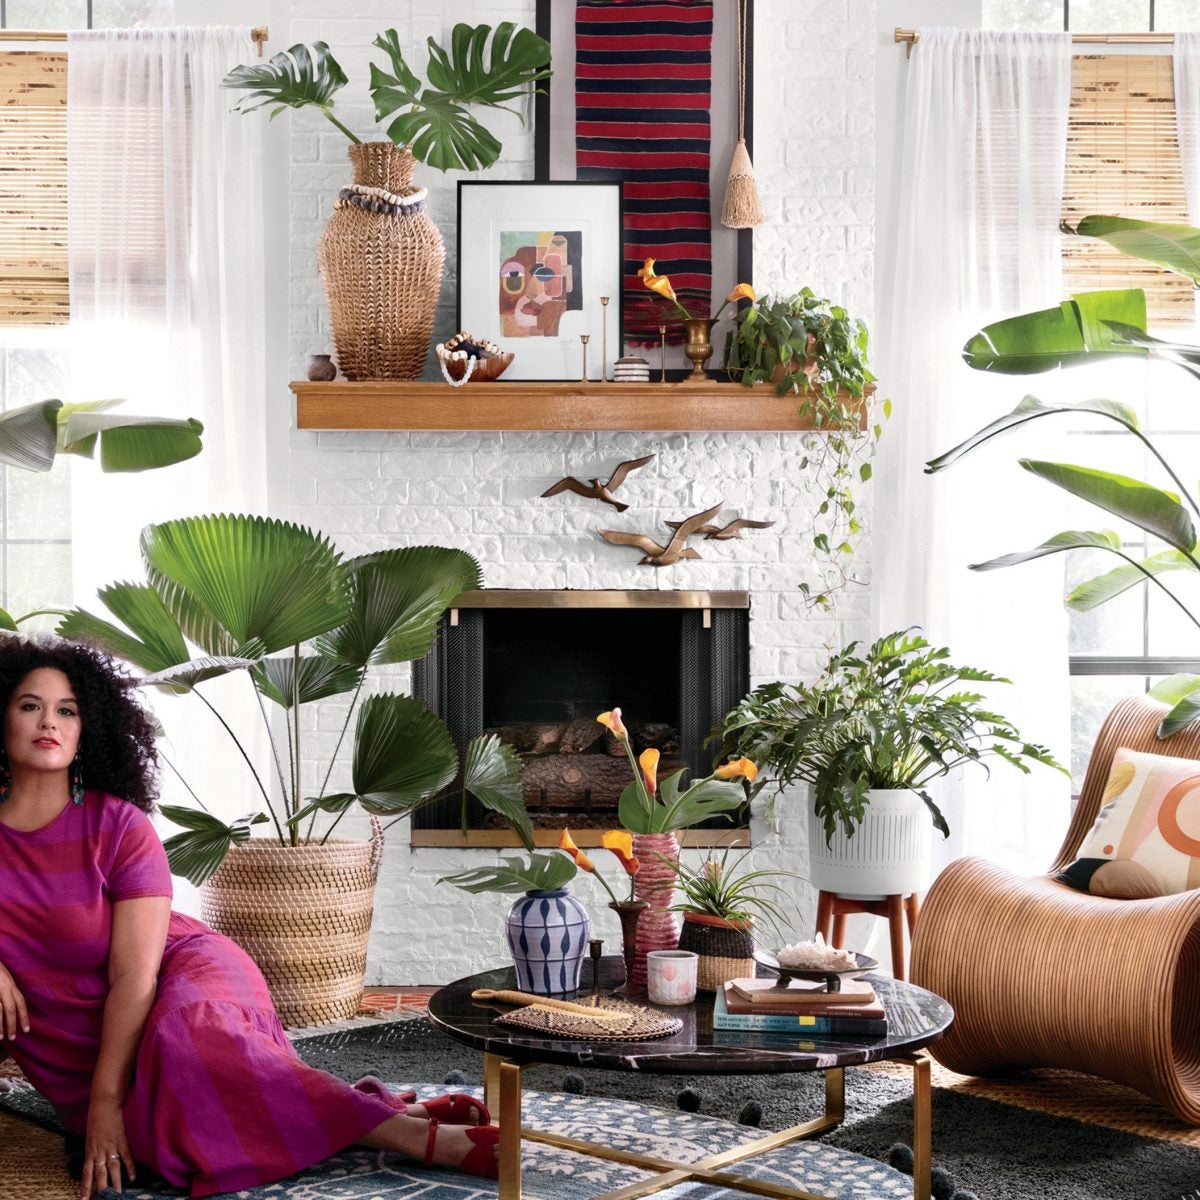 Interior Designer Justina Blakeney Shows The World How To Live In Color